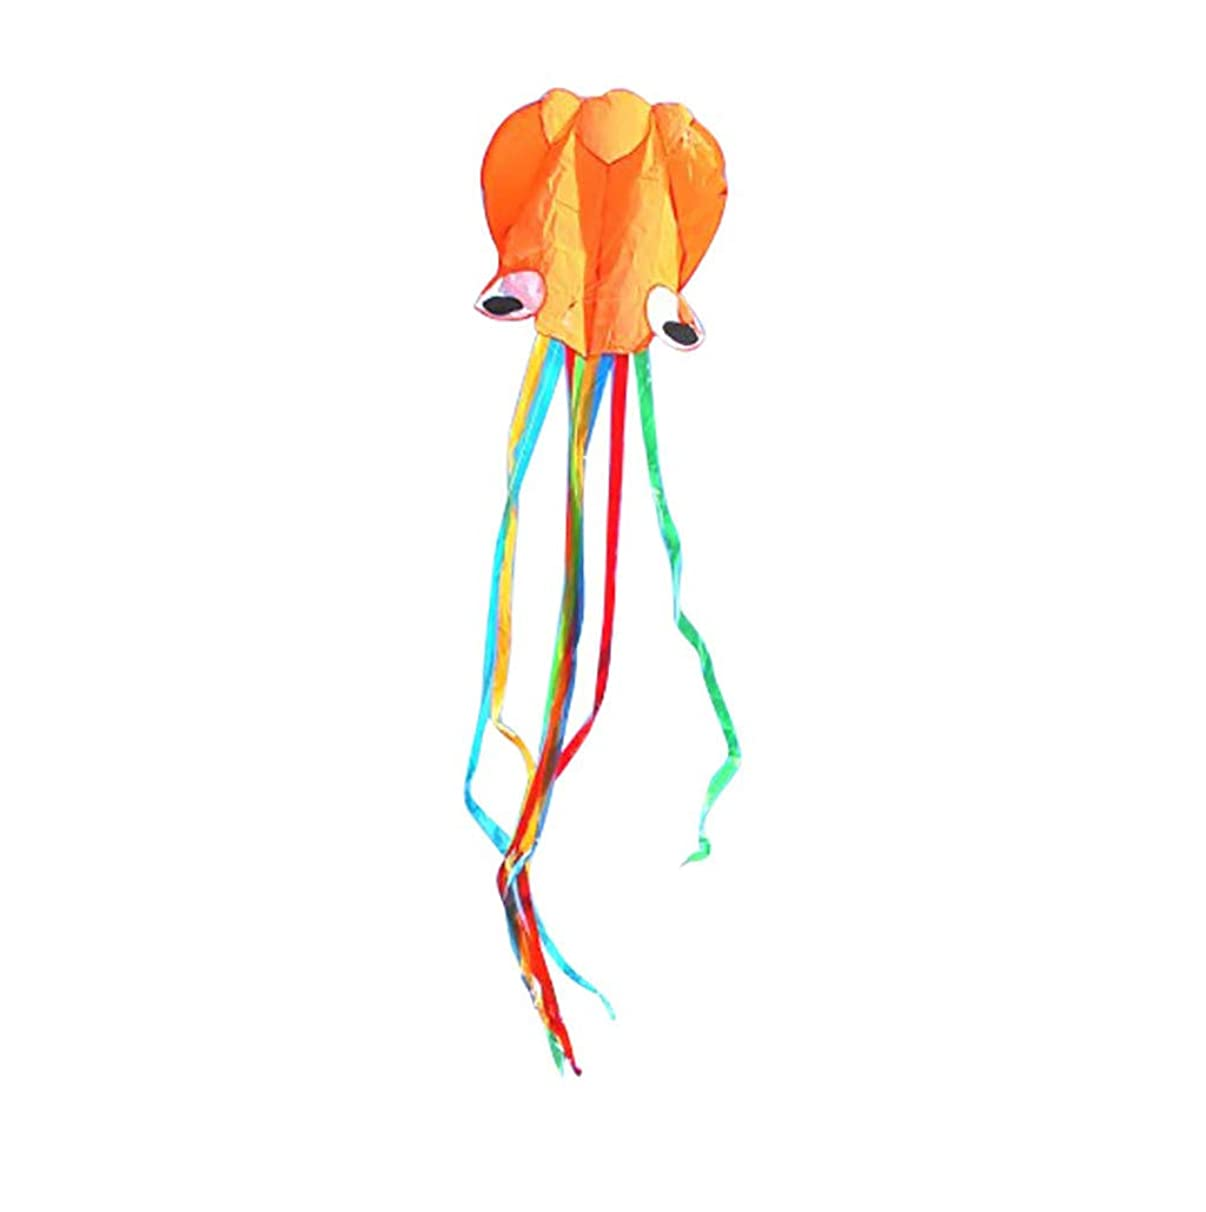 Oillian Kite Huge Octopus Kite Beautiful Large Easy Flyer Kite Fun Sports Kite Beach Kit 31 Inches for Kids Adults (Orange)